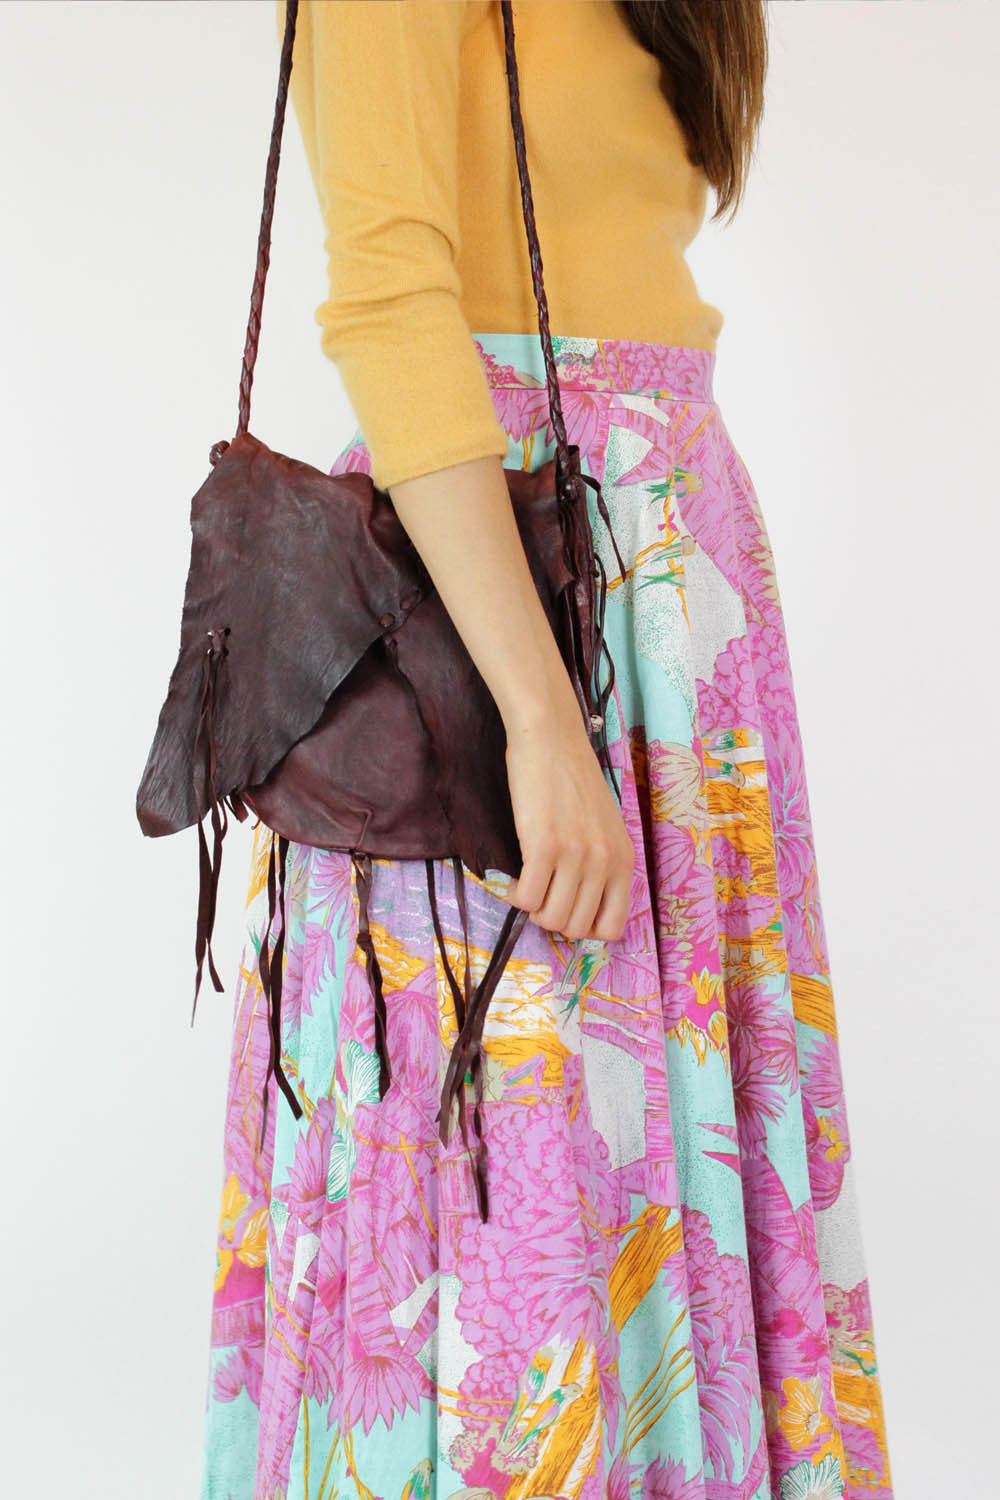 Braided Fringed & Beaded Leather Bag